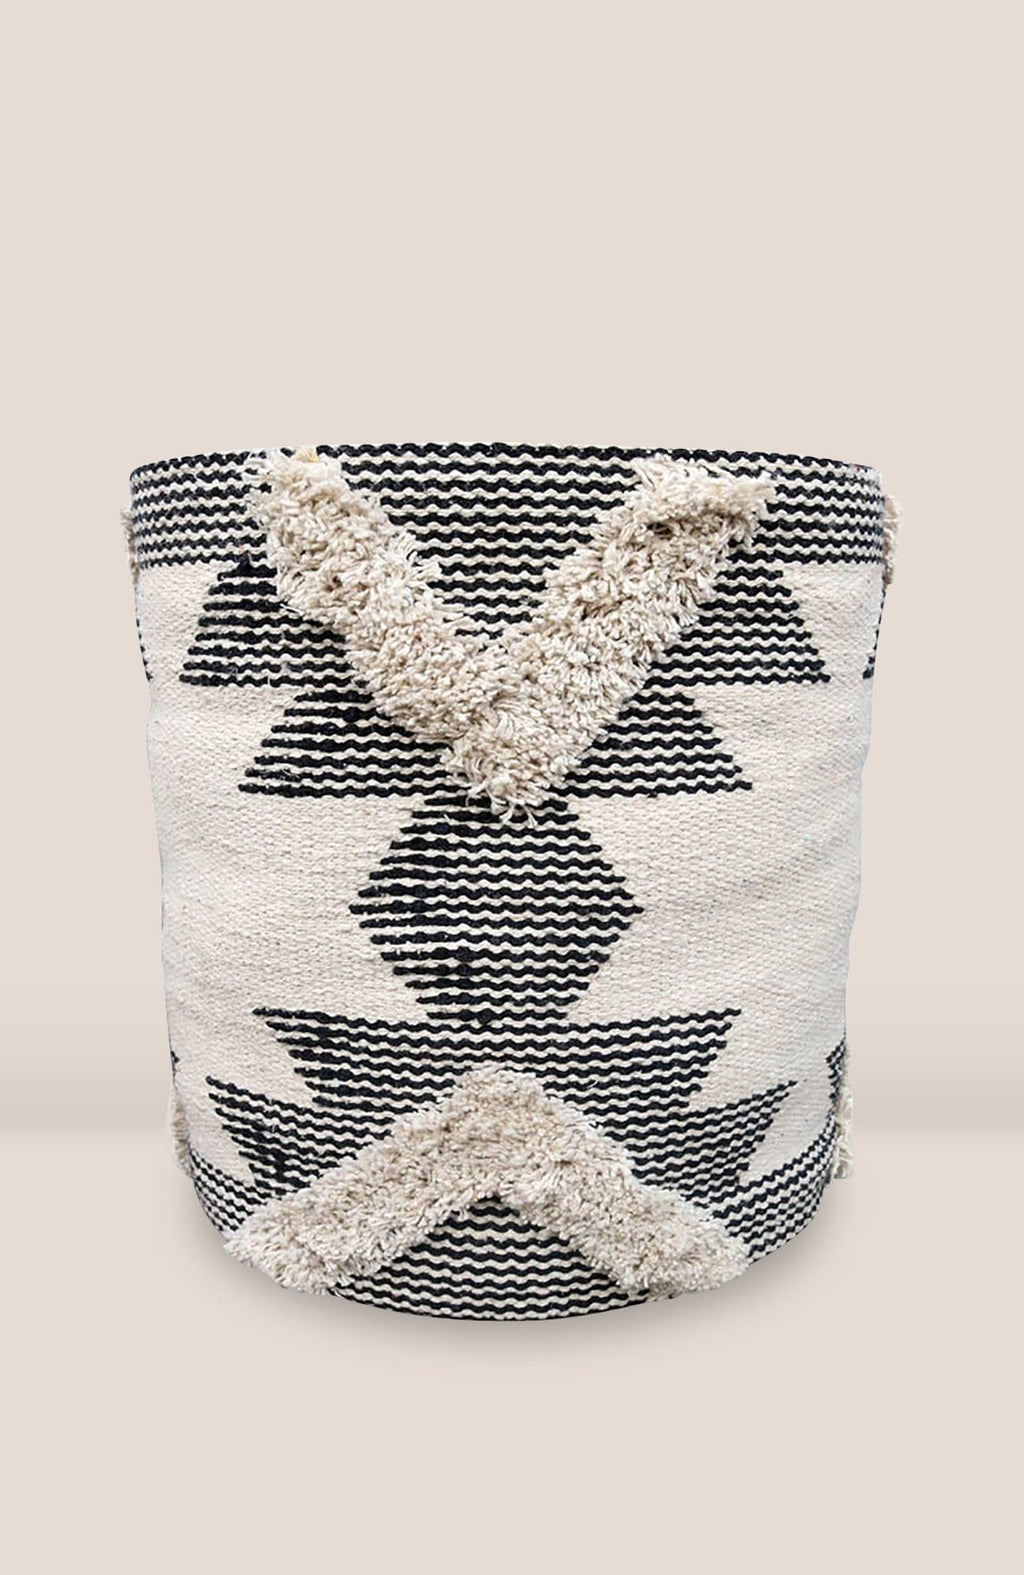 Woven Basket Meli - Home Decor | Shop Baskets, Ceramics, Pillows, Rugs & Wall Hangs online